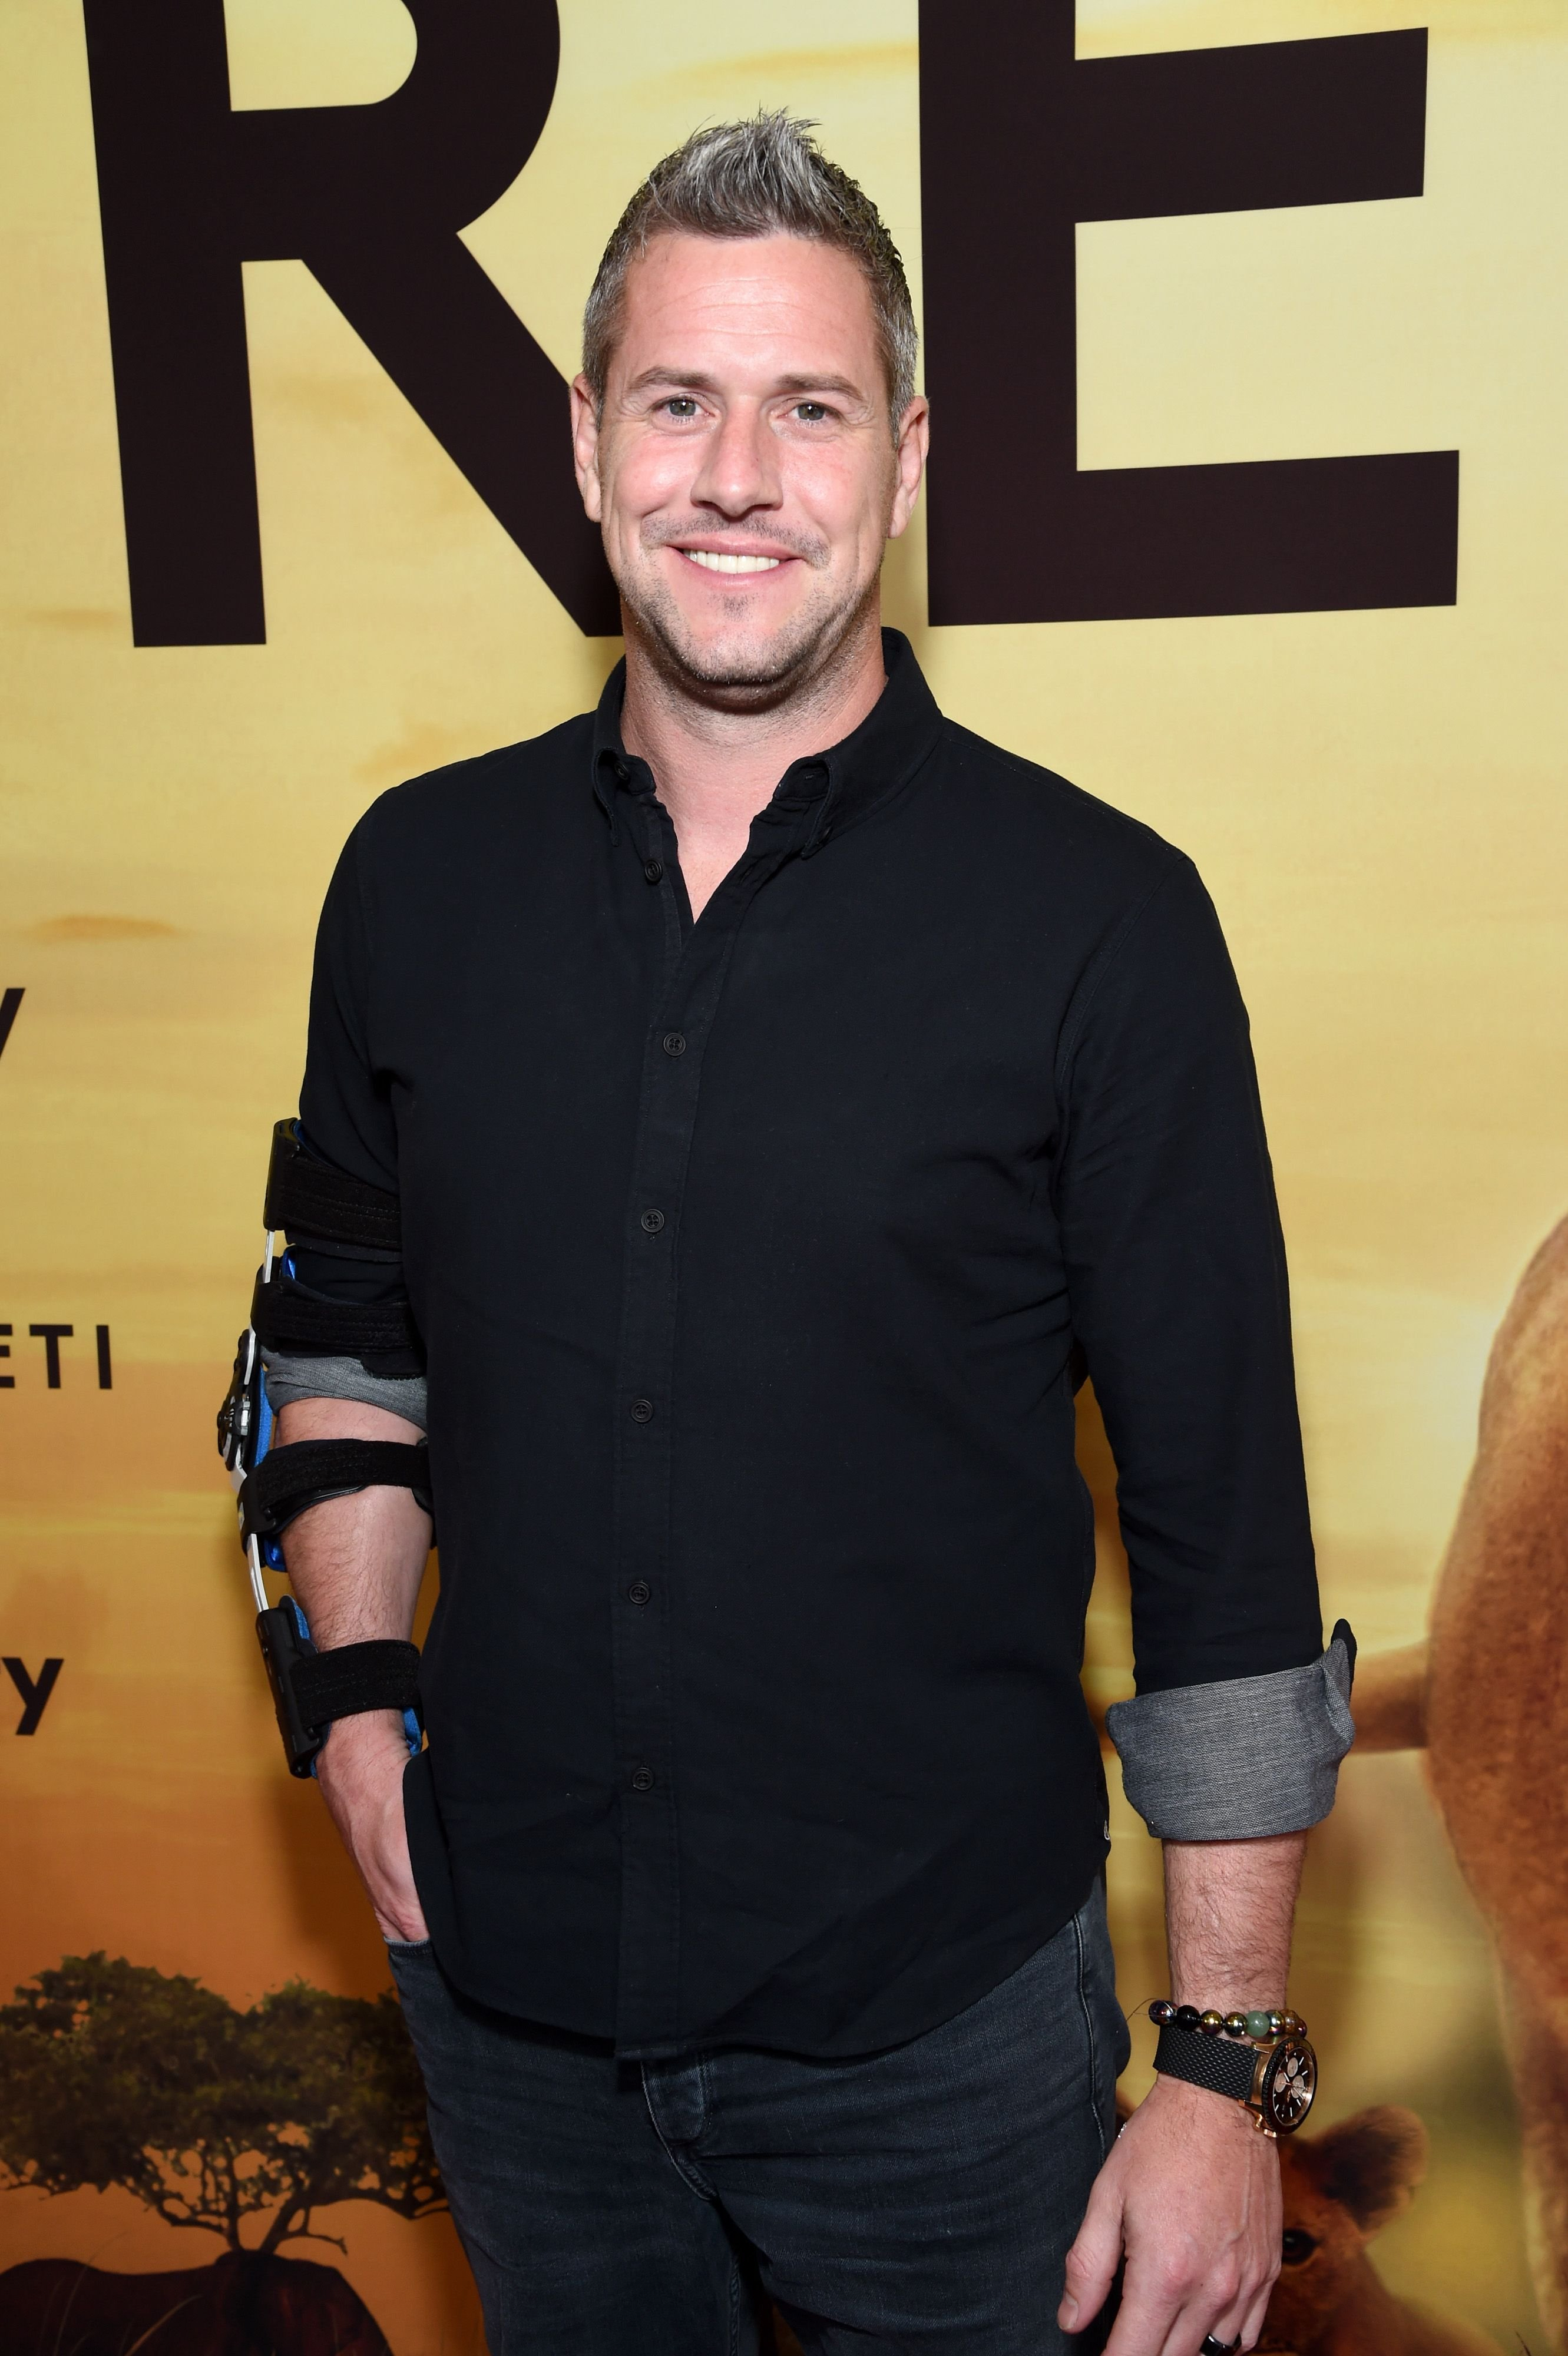 """Ant Anstead at Discovery's """"Serengeti"""" premiere at Wallis Annenberg Center for the Performing Arts on July 23, 2019   Photo: Getty Images"""